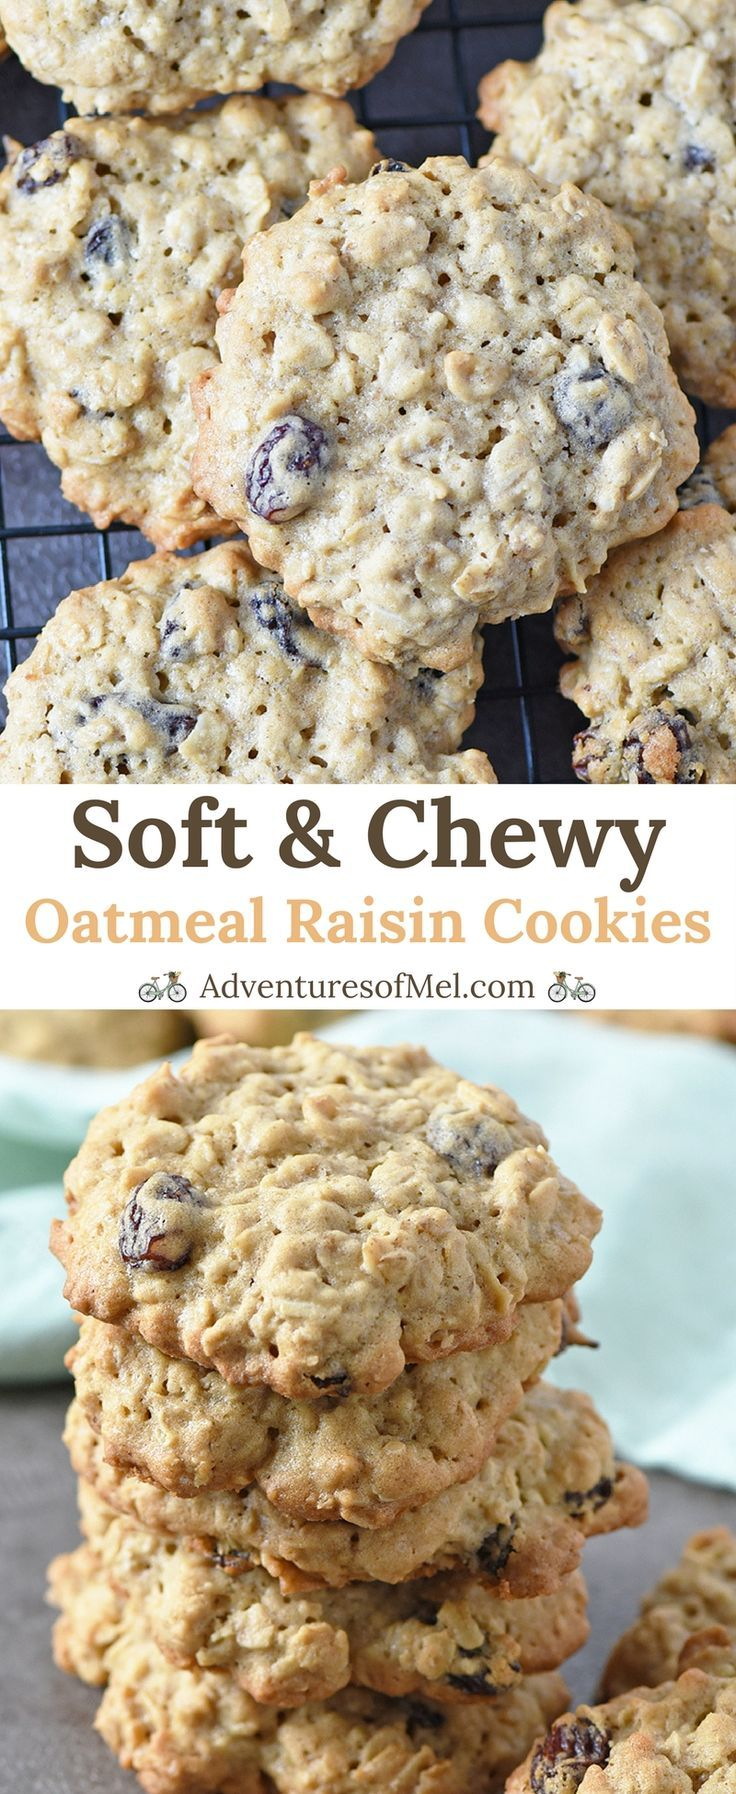 Oatmeal Raisin Cookies, made with brown sugar, cinnamon, and oatmeal, have a crispy outer edge and a soft, chewy middle. Delicious cookie recipe! #oatmealcookie #desserts #cookies #oatmeal